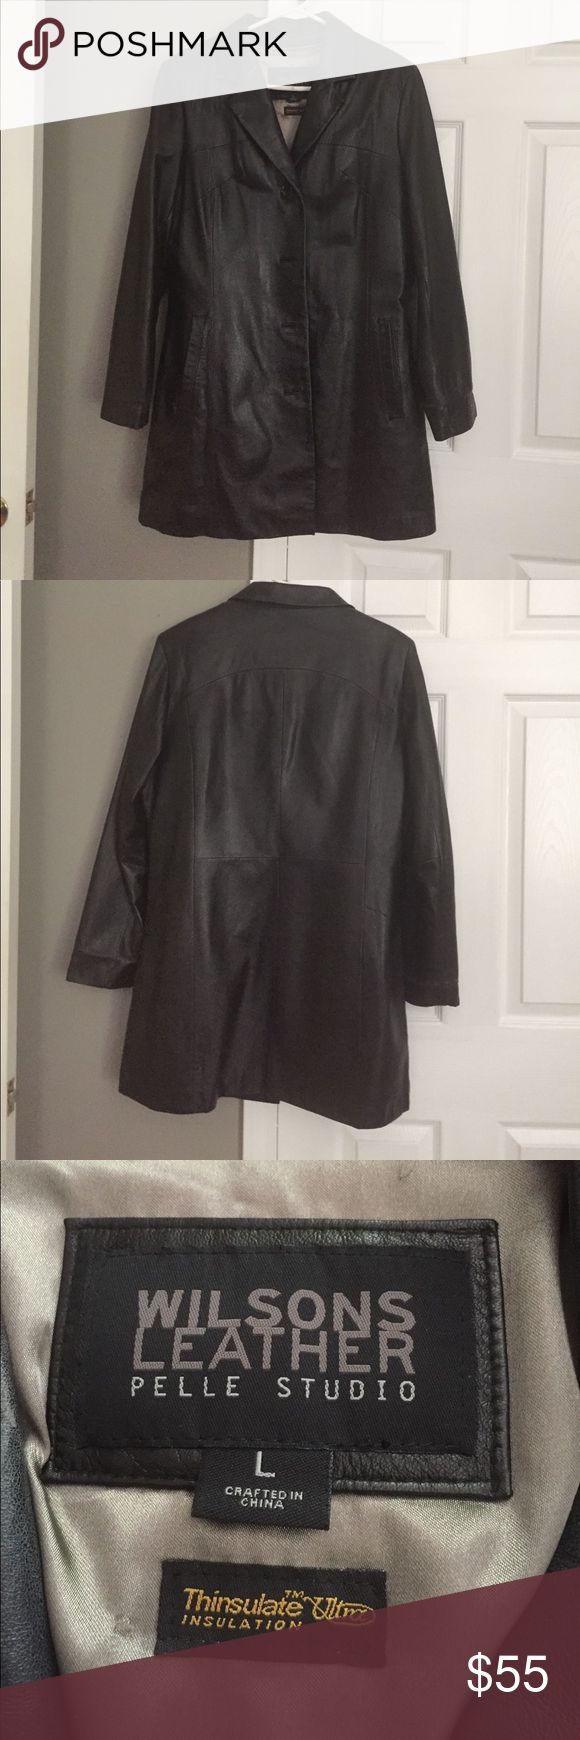 Leather coat Beautiful real leather coat by Wilsons